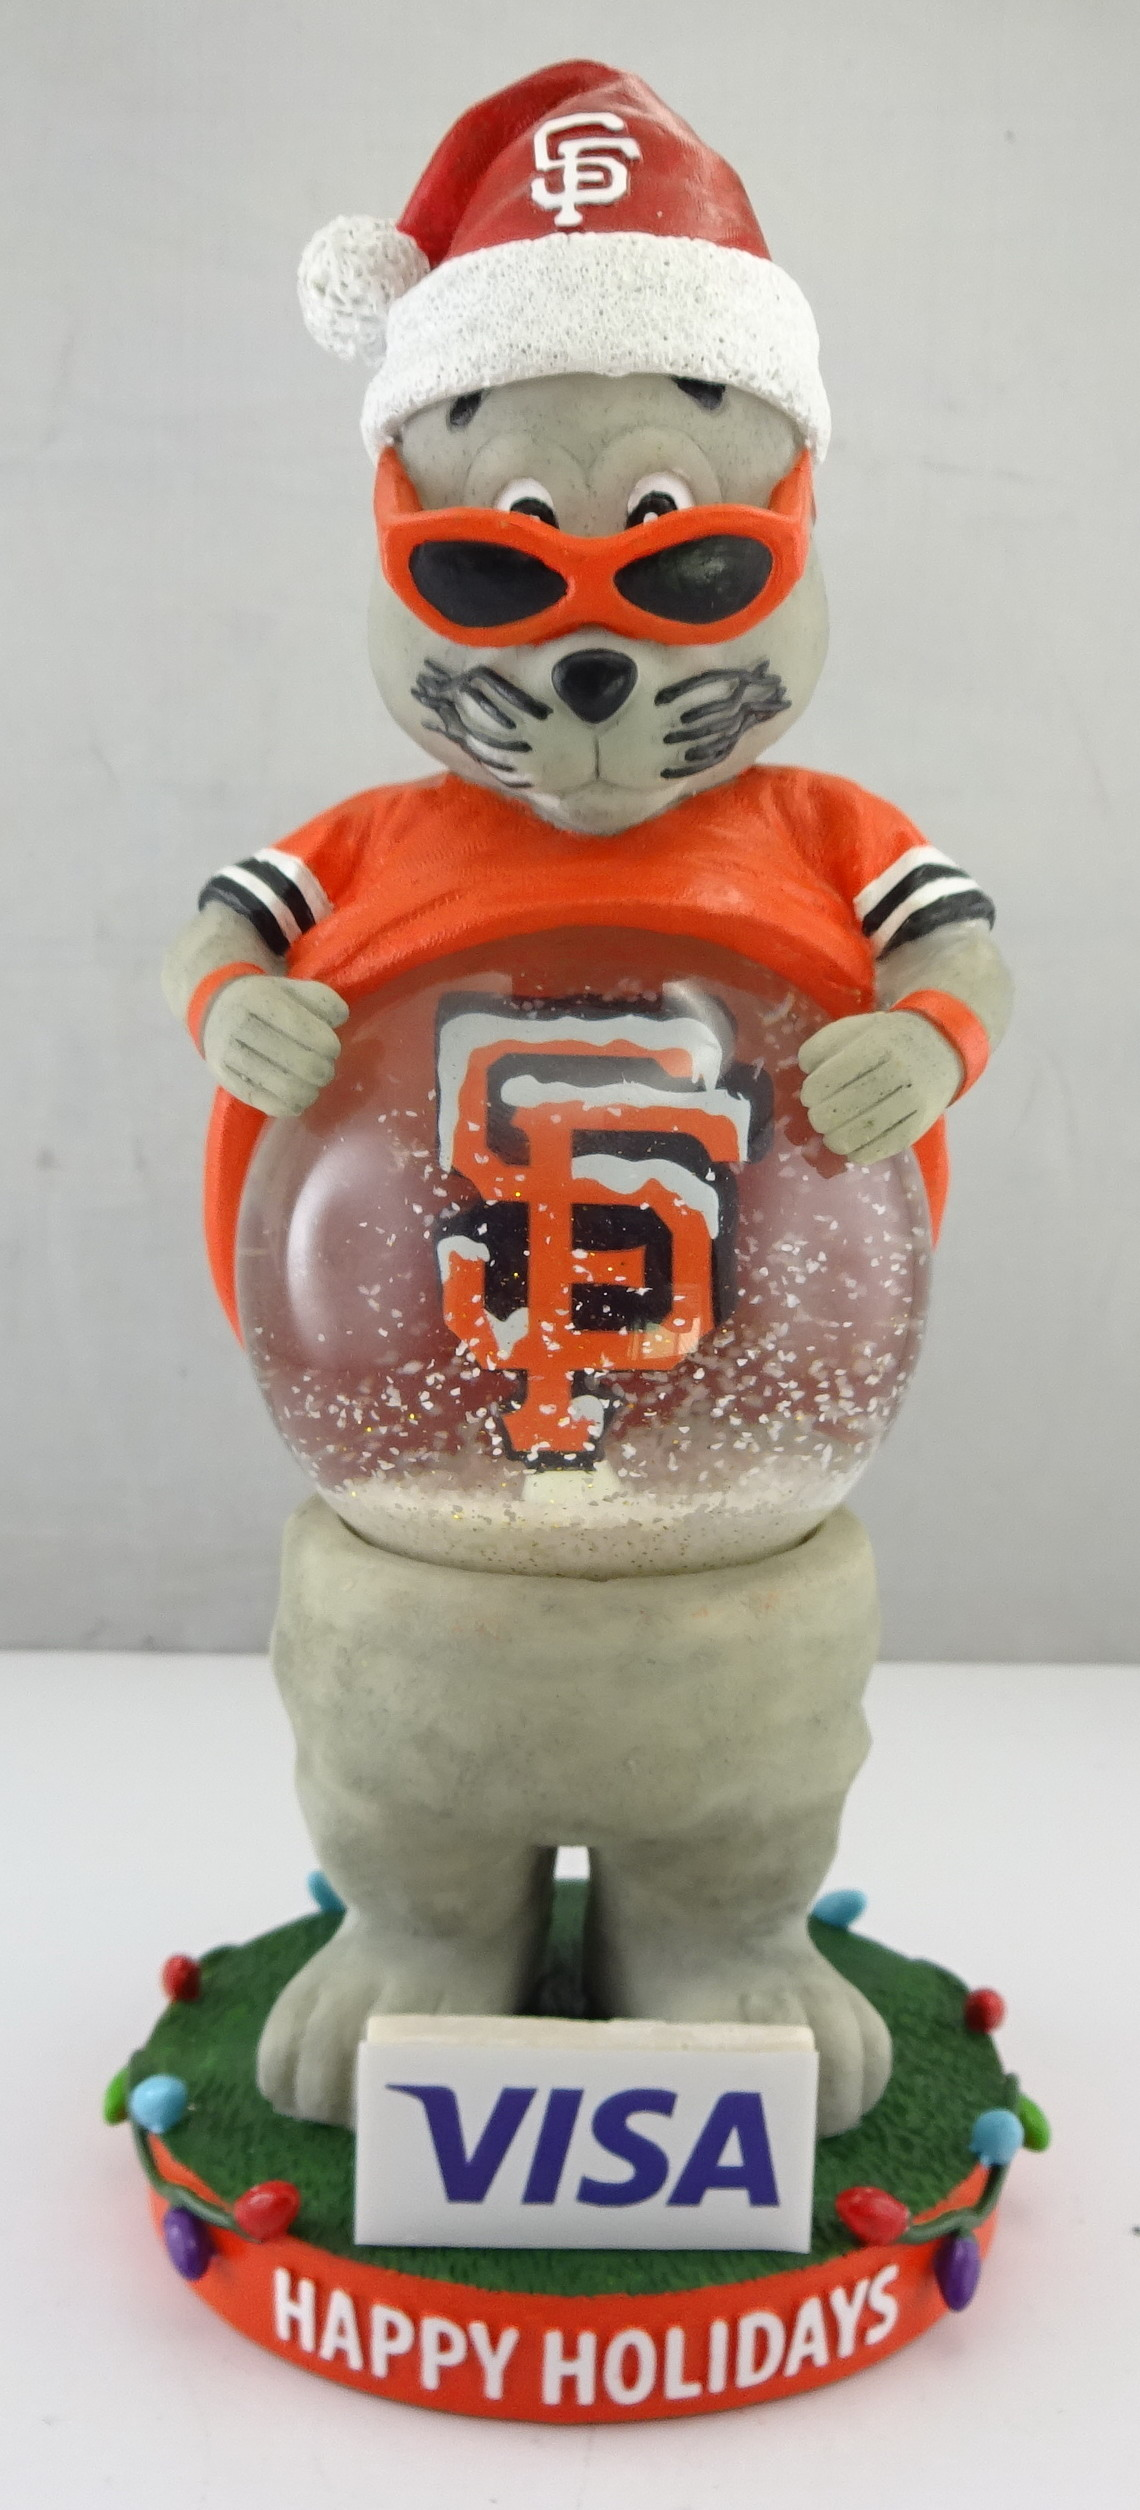 SF Giants - Lou Seal 113777, 7.5in Snowglobe (1).jpg